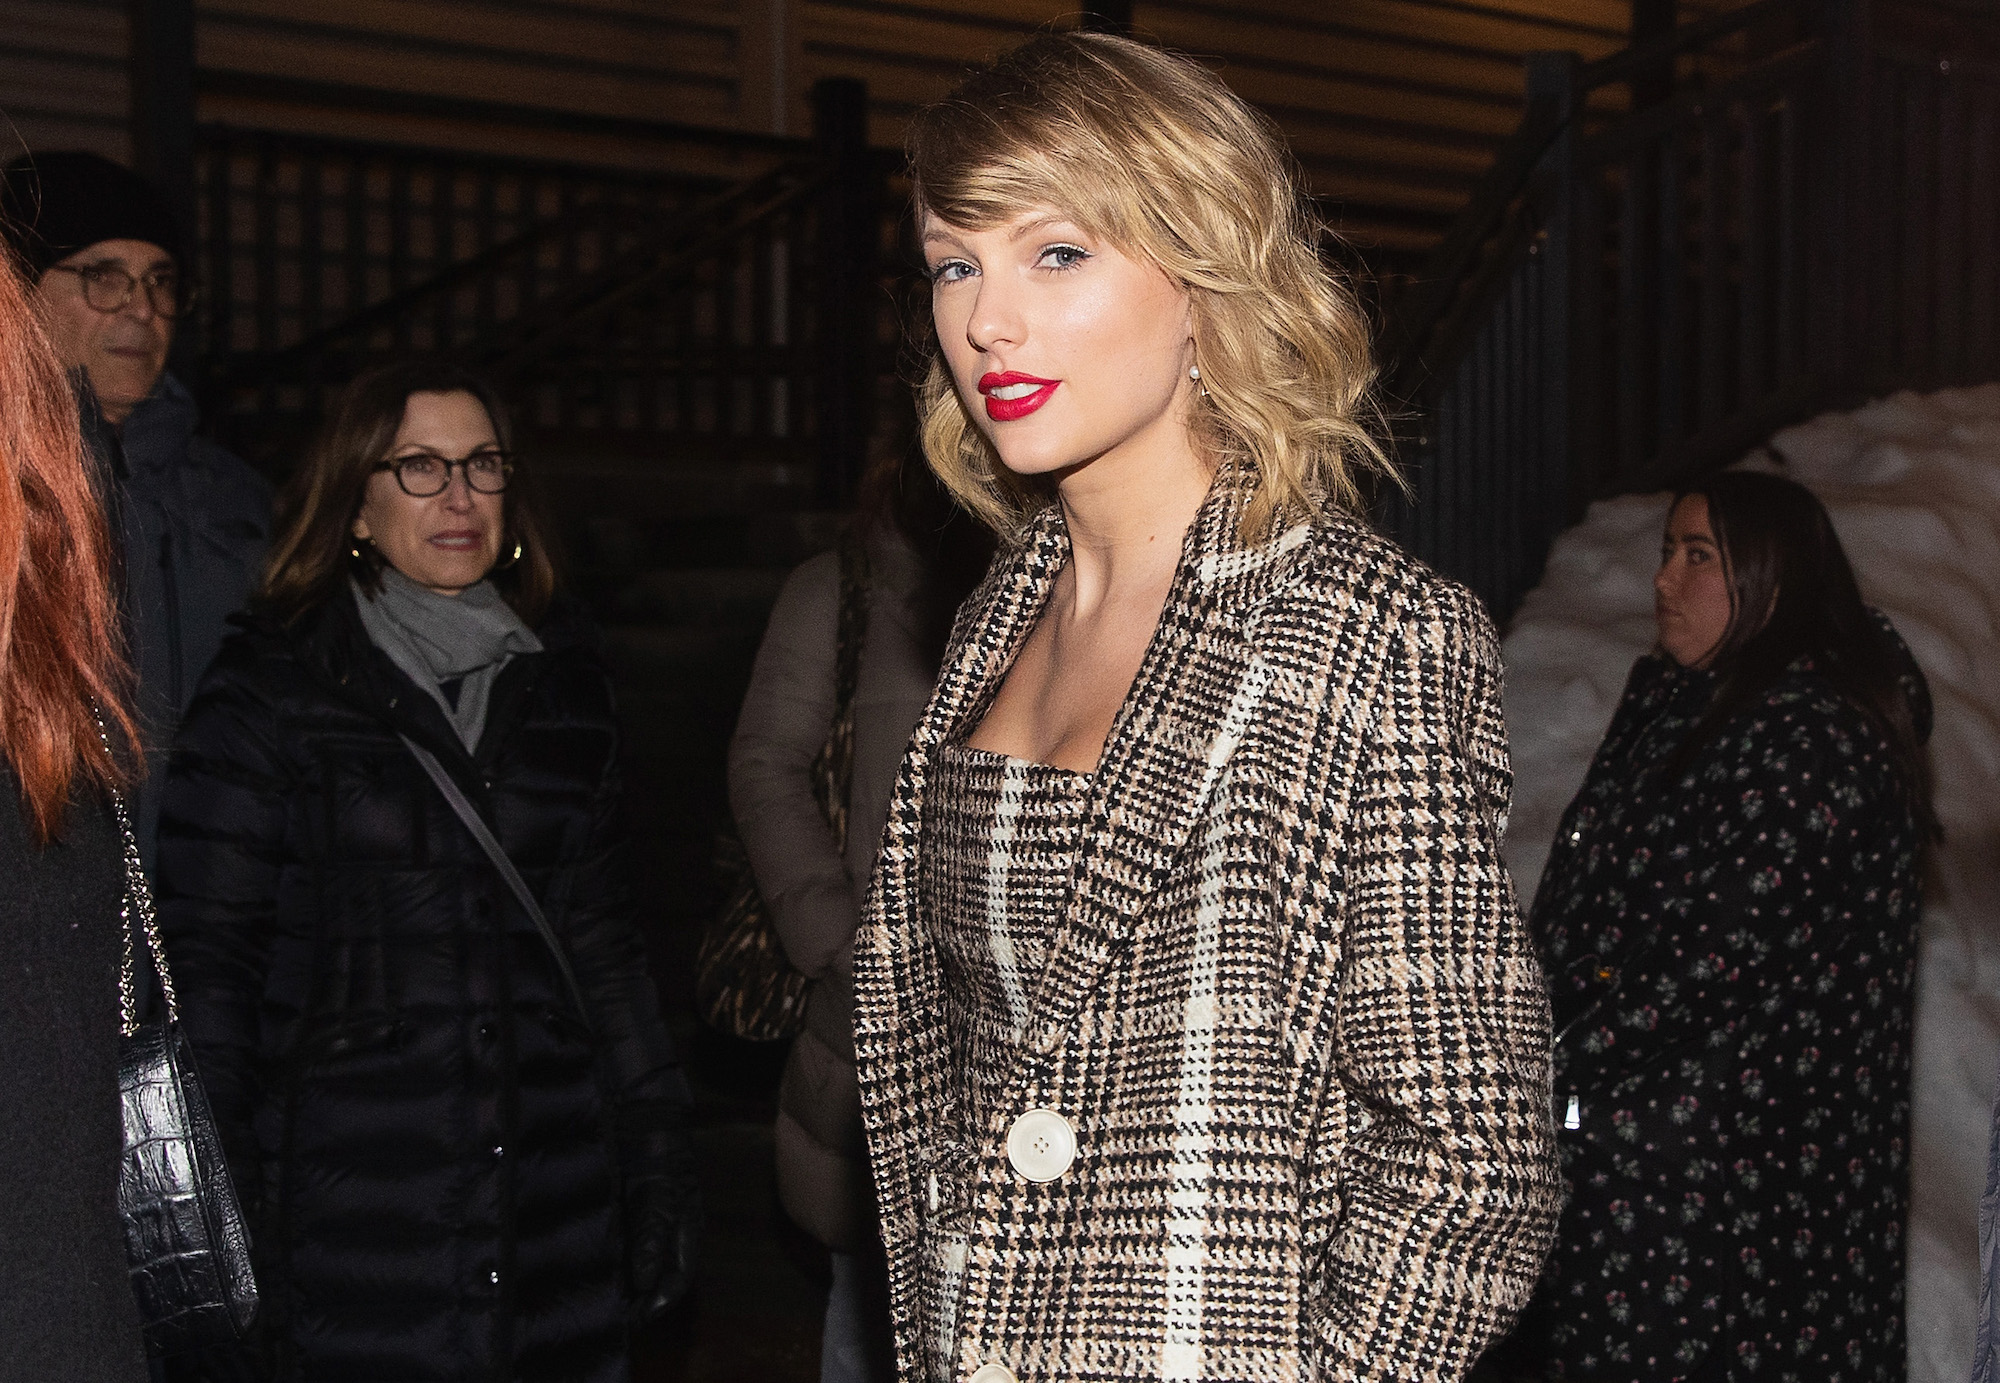 Taylor Swift during the Sundance Film Festival on January 23, 2020